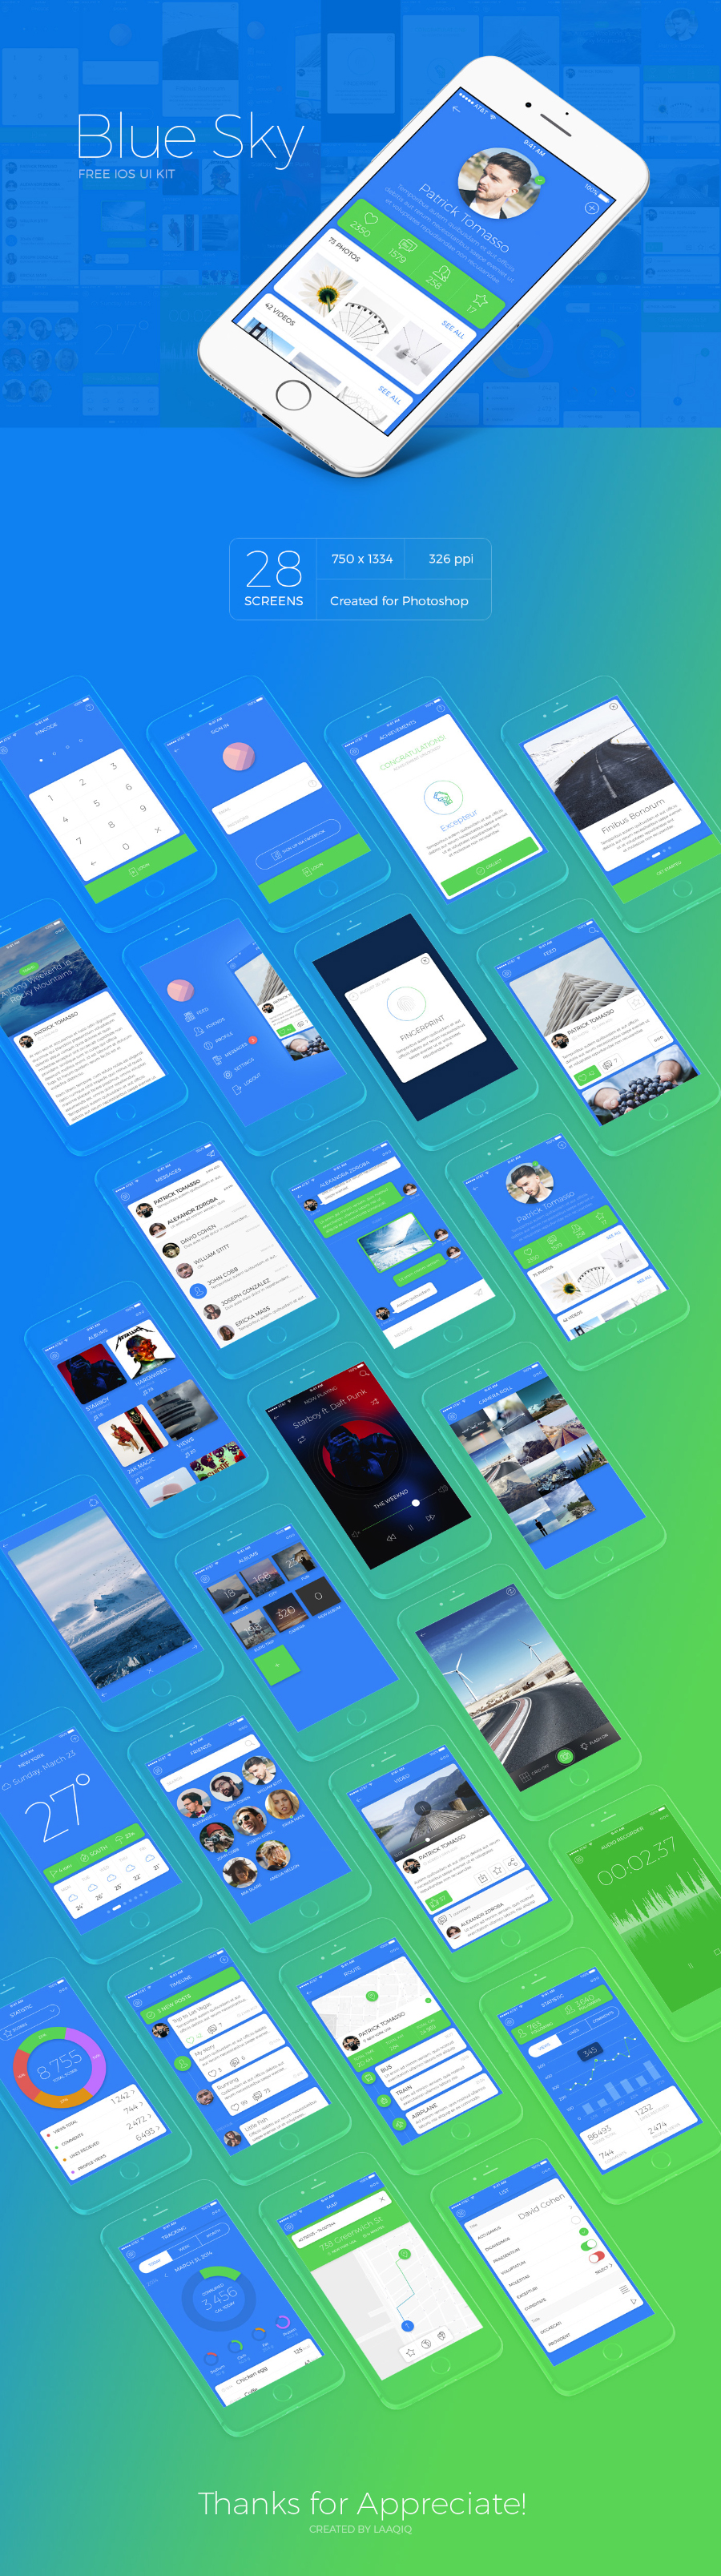 Blue Sky Free iOS UI Kit